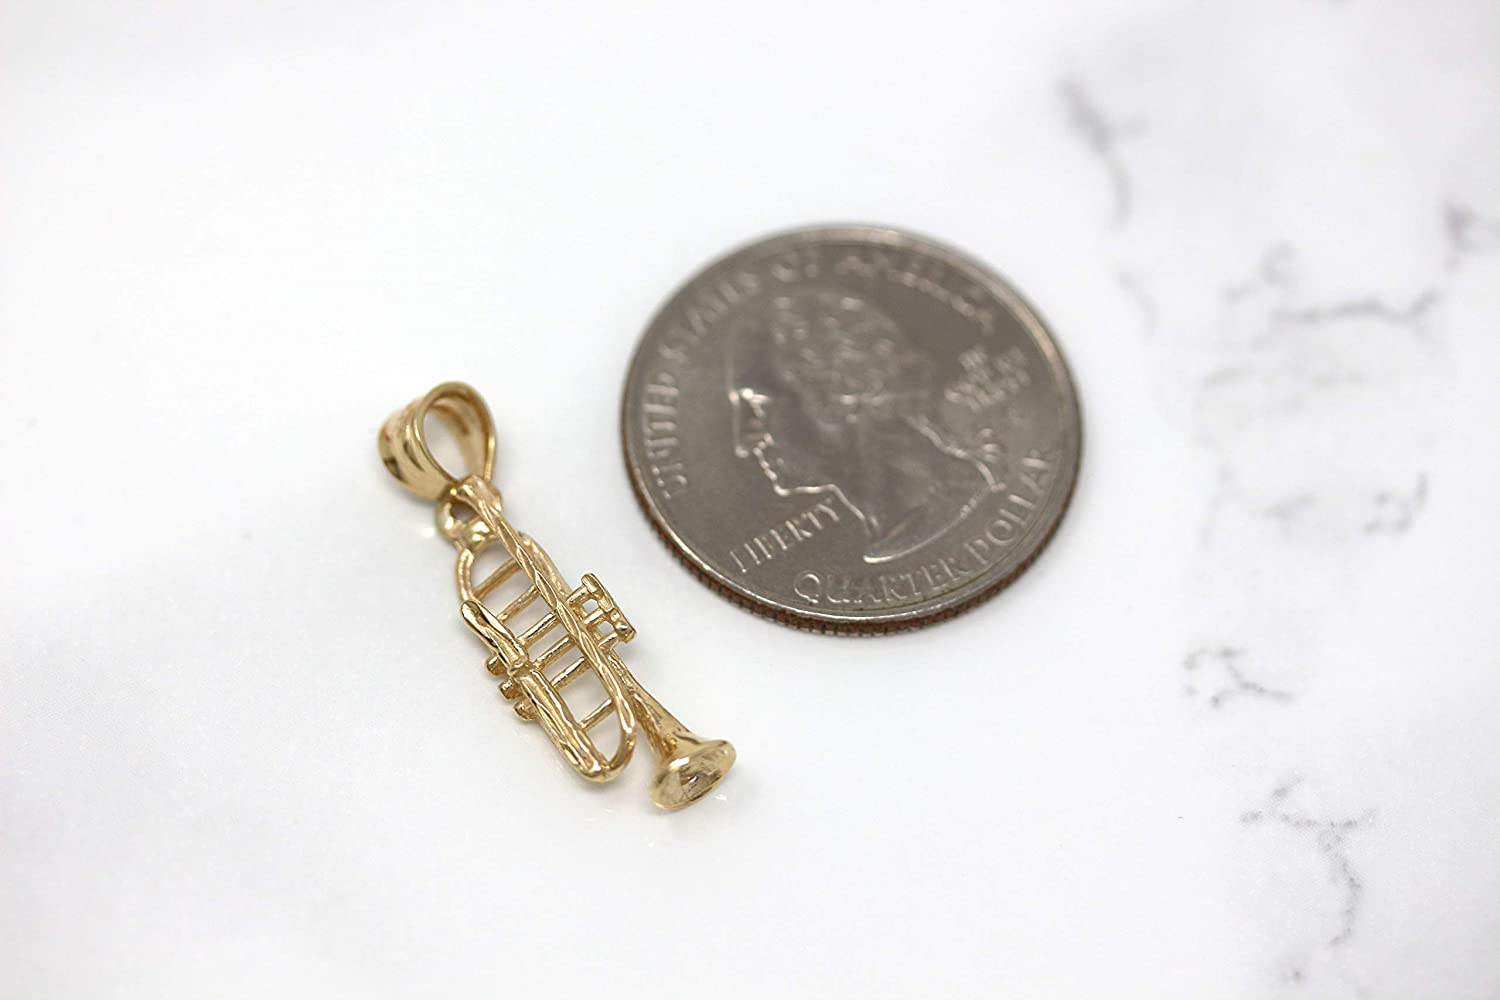 CaliRoseJewelry 14k Gold Trumpet Horn Charm Pendant Necklace